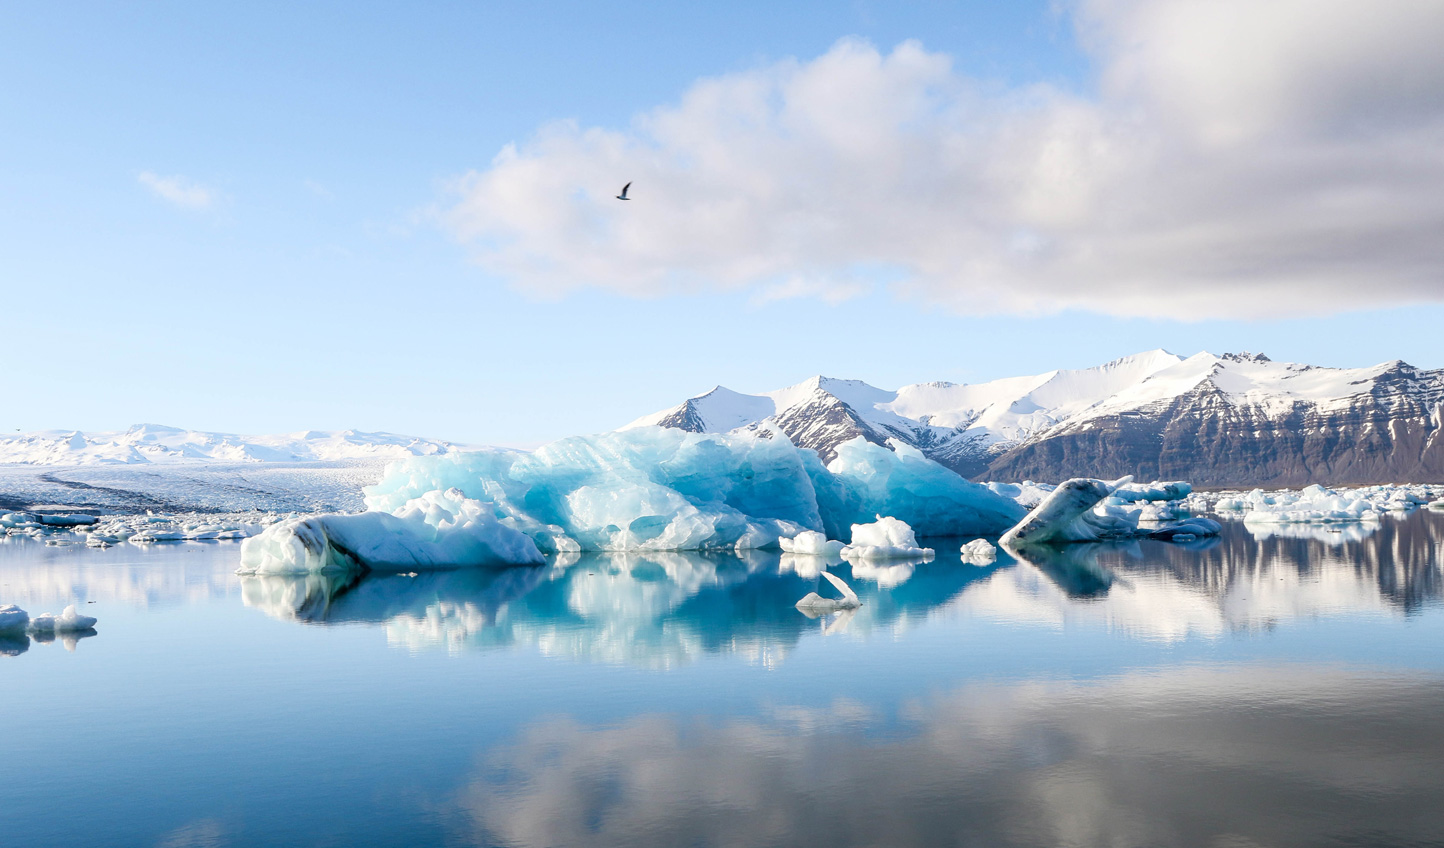 Touch down at Jokulsarlon and explore the lagoon by boat